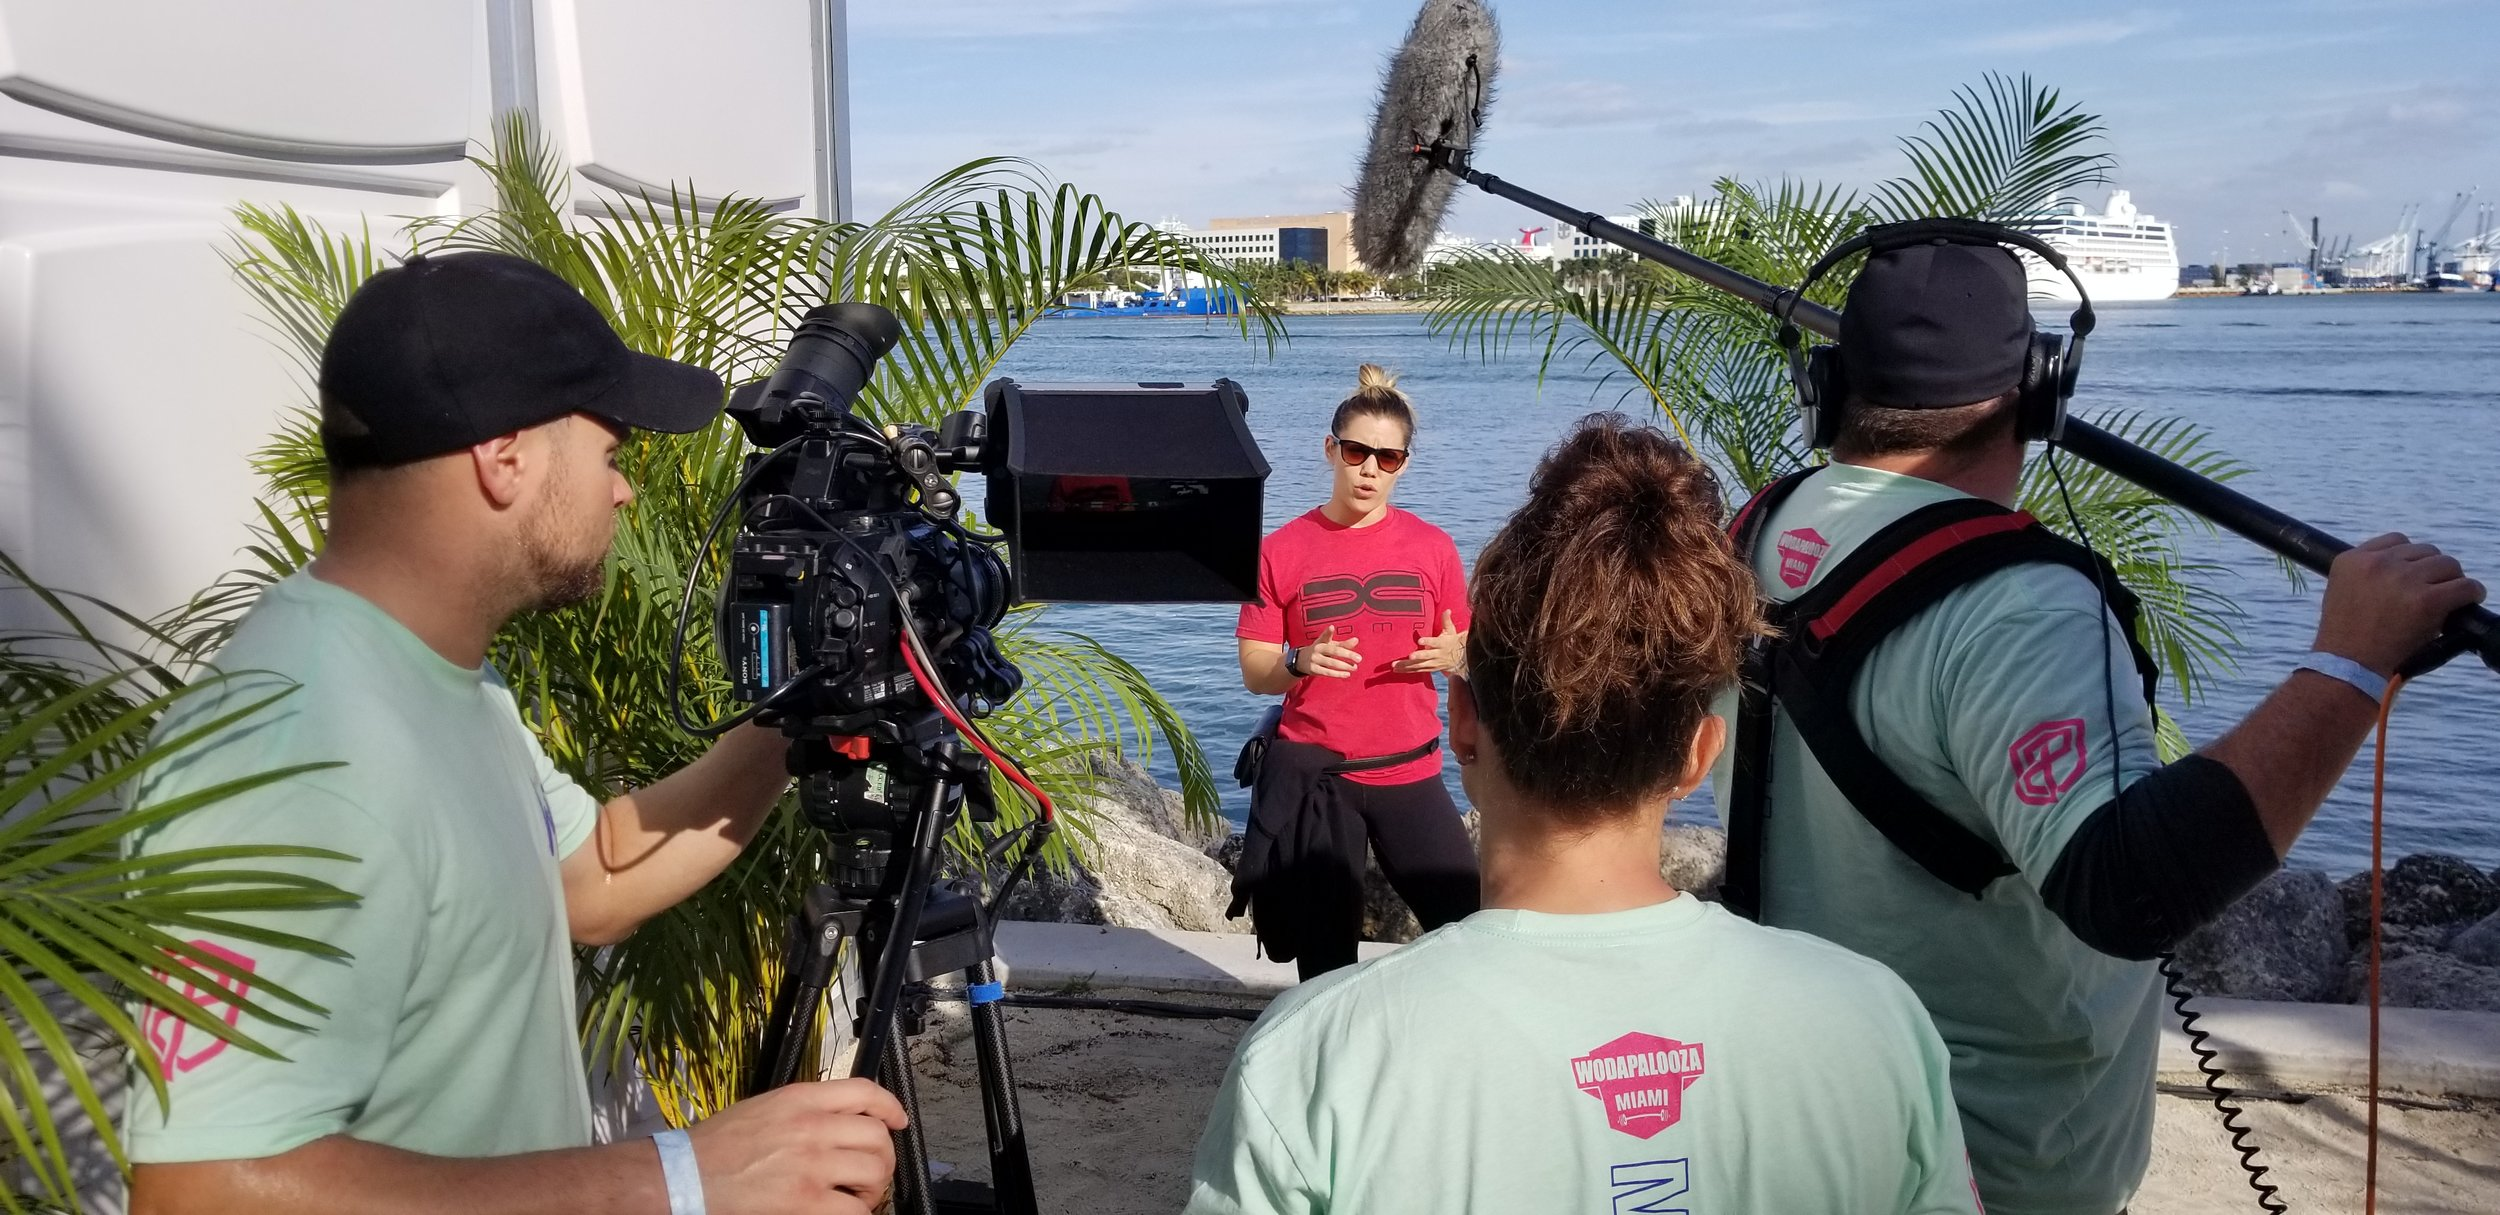 On location for IMG and Cross-Fit's Wodapalooza Miami